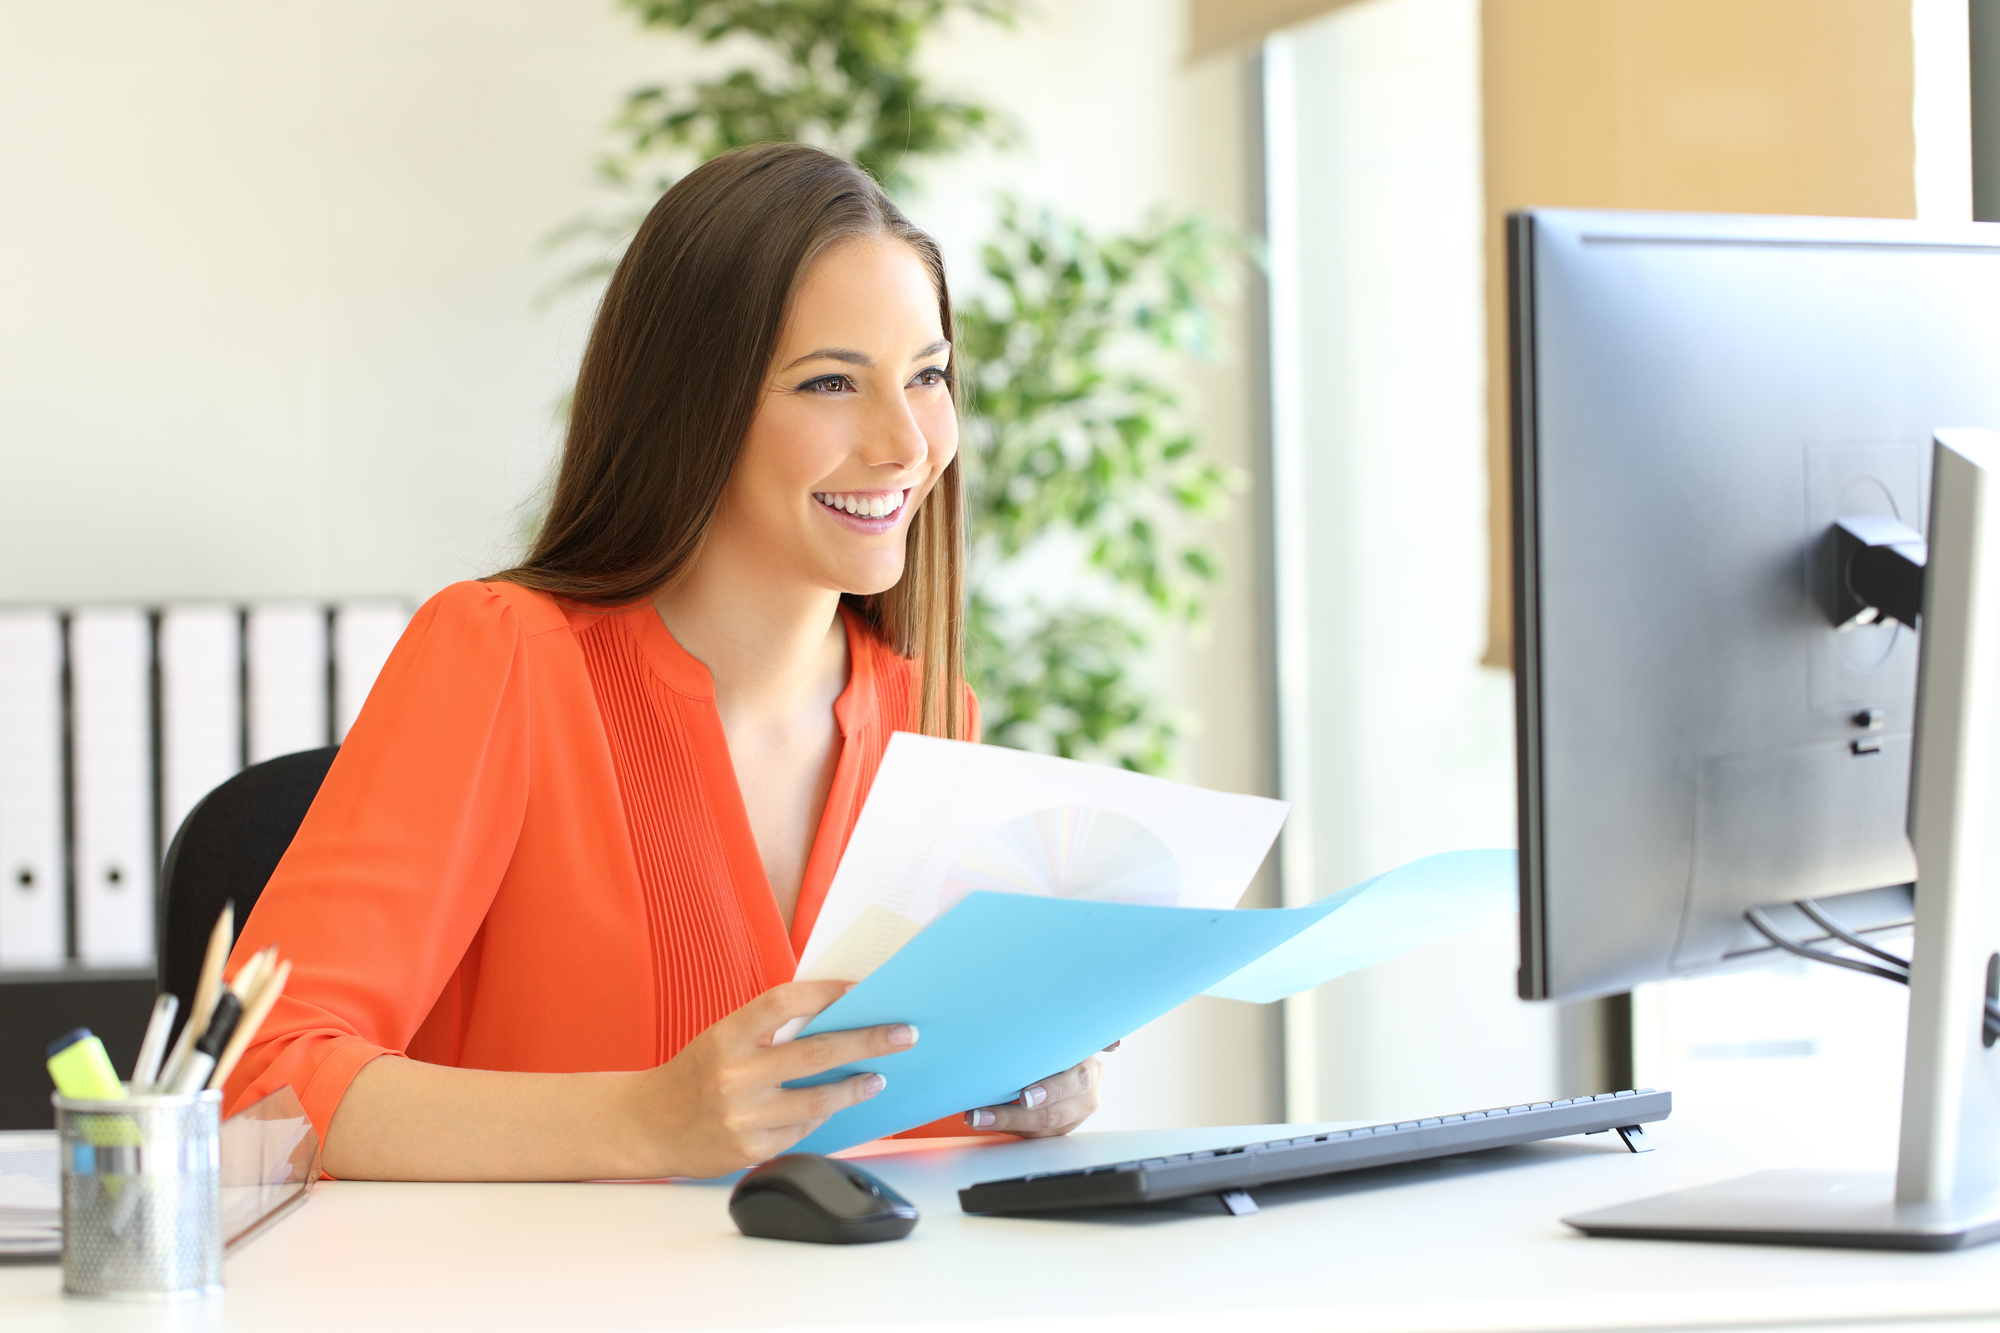 How To Get A Job As An Office Assistant Usa Today